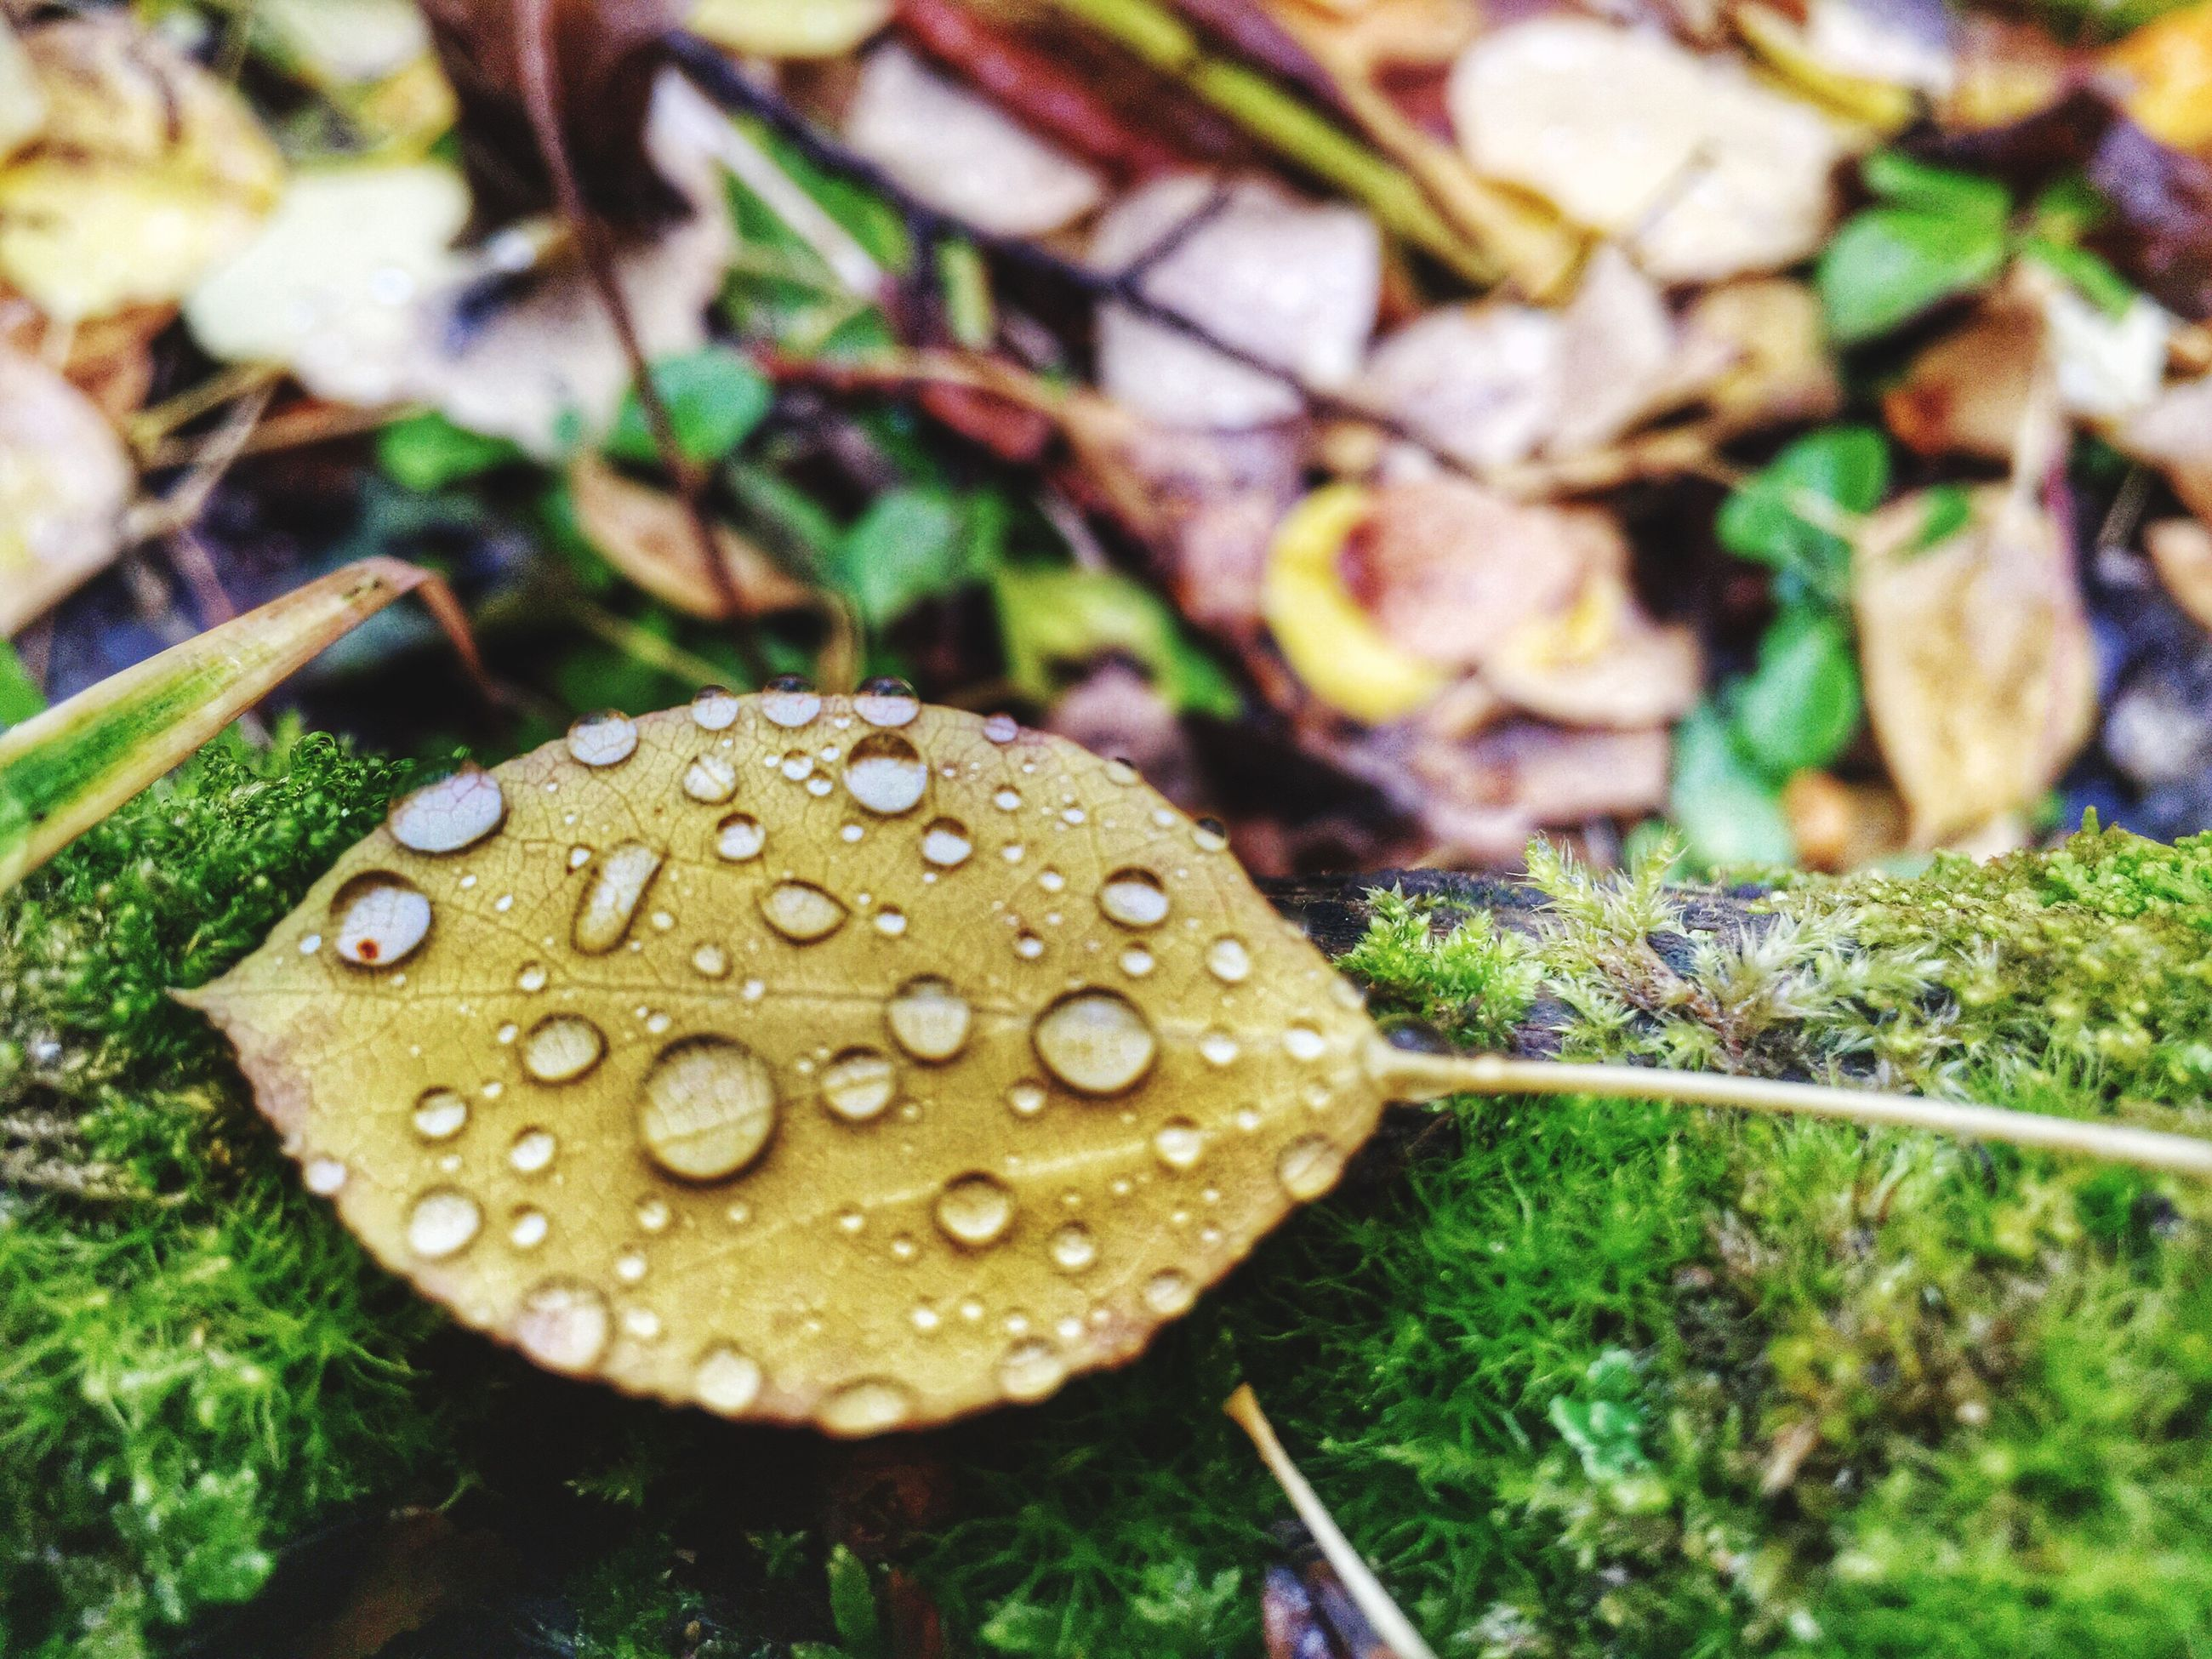 close-up, leaf, growth, wet, water, nature, plant, drop, fragility, green color, focus on foreground, beauty in nature, freshness, natural pattern, selective focus, day, high angle view, outdoors, no people, dew